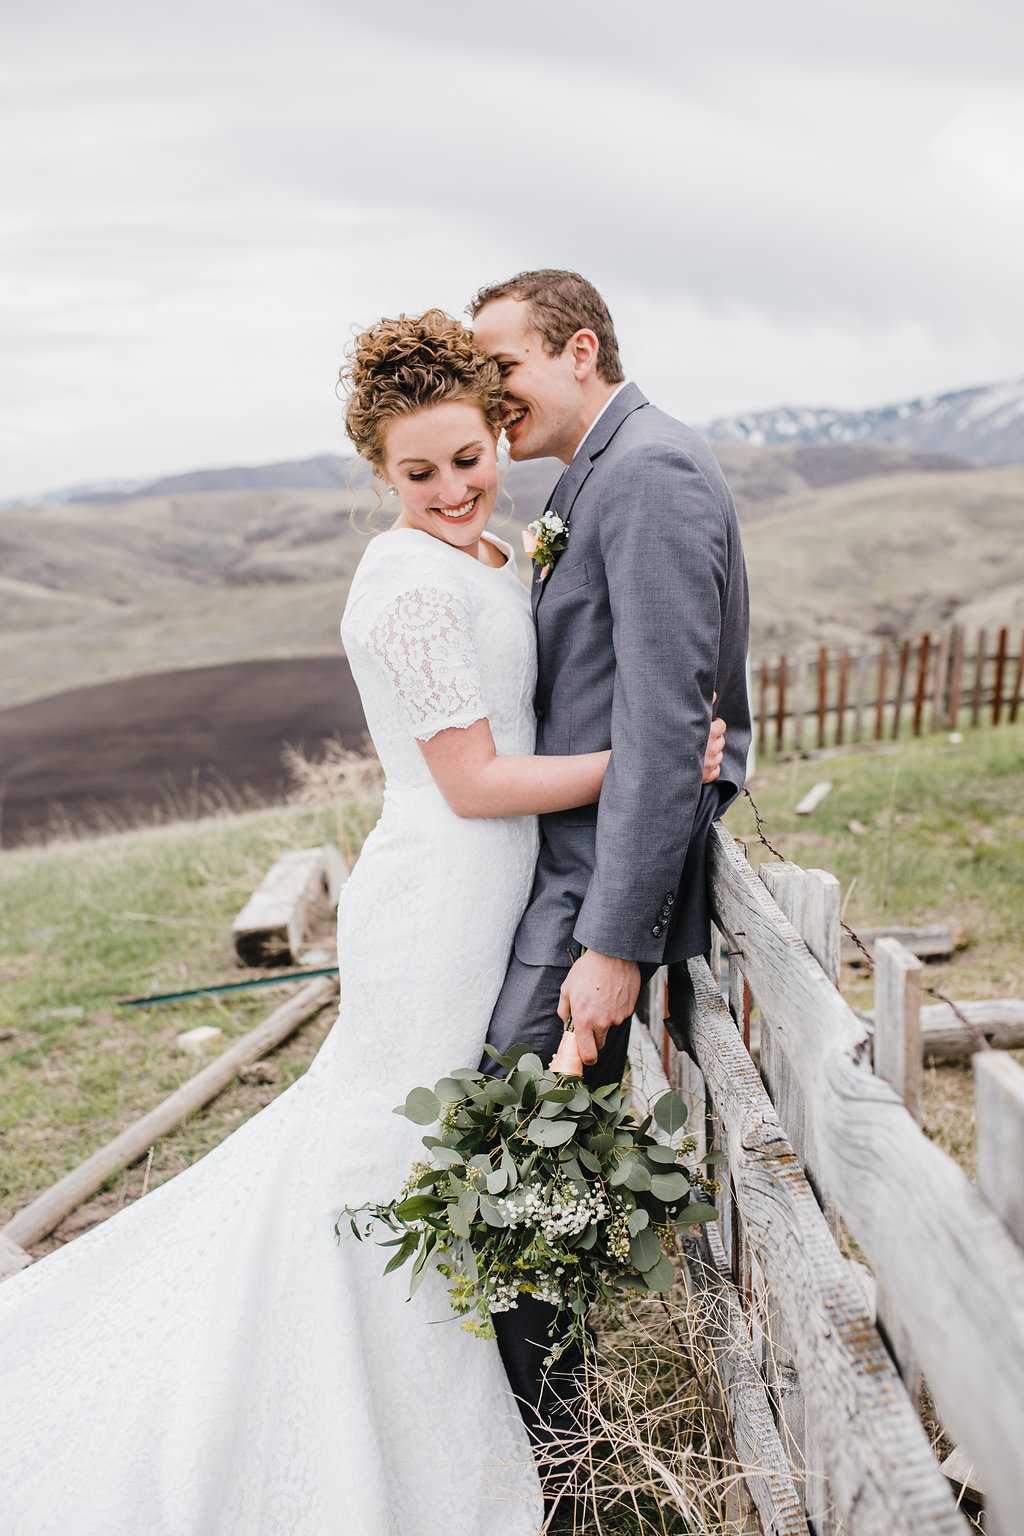 young couple so in love bride and groom cache valley paradise utah natural posing wedding photography